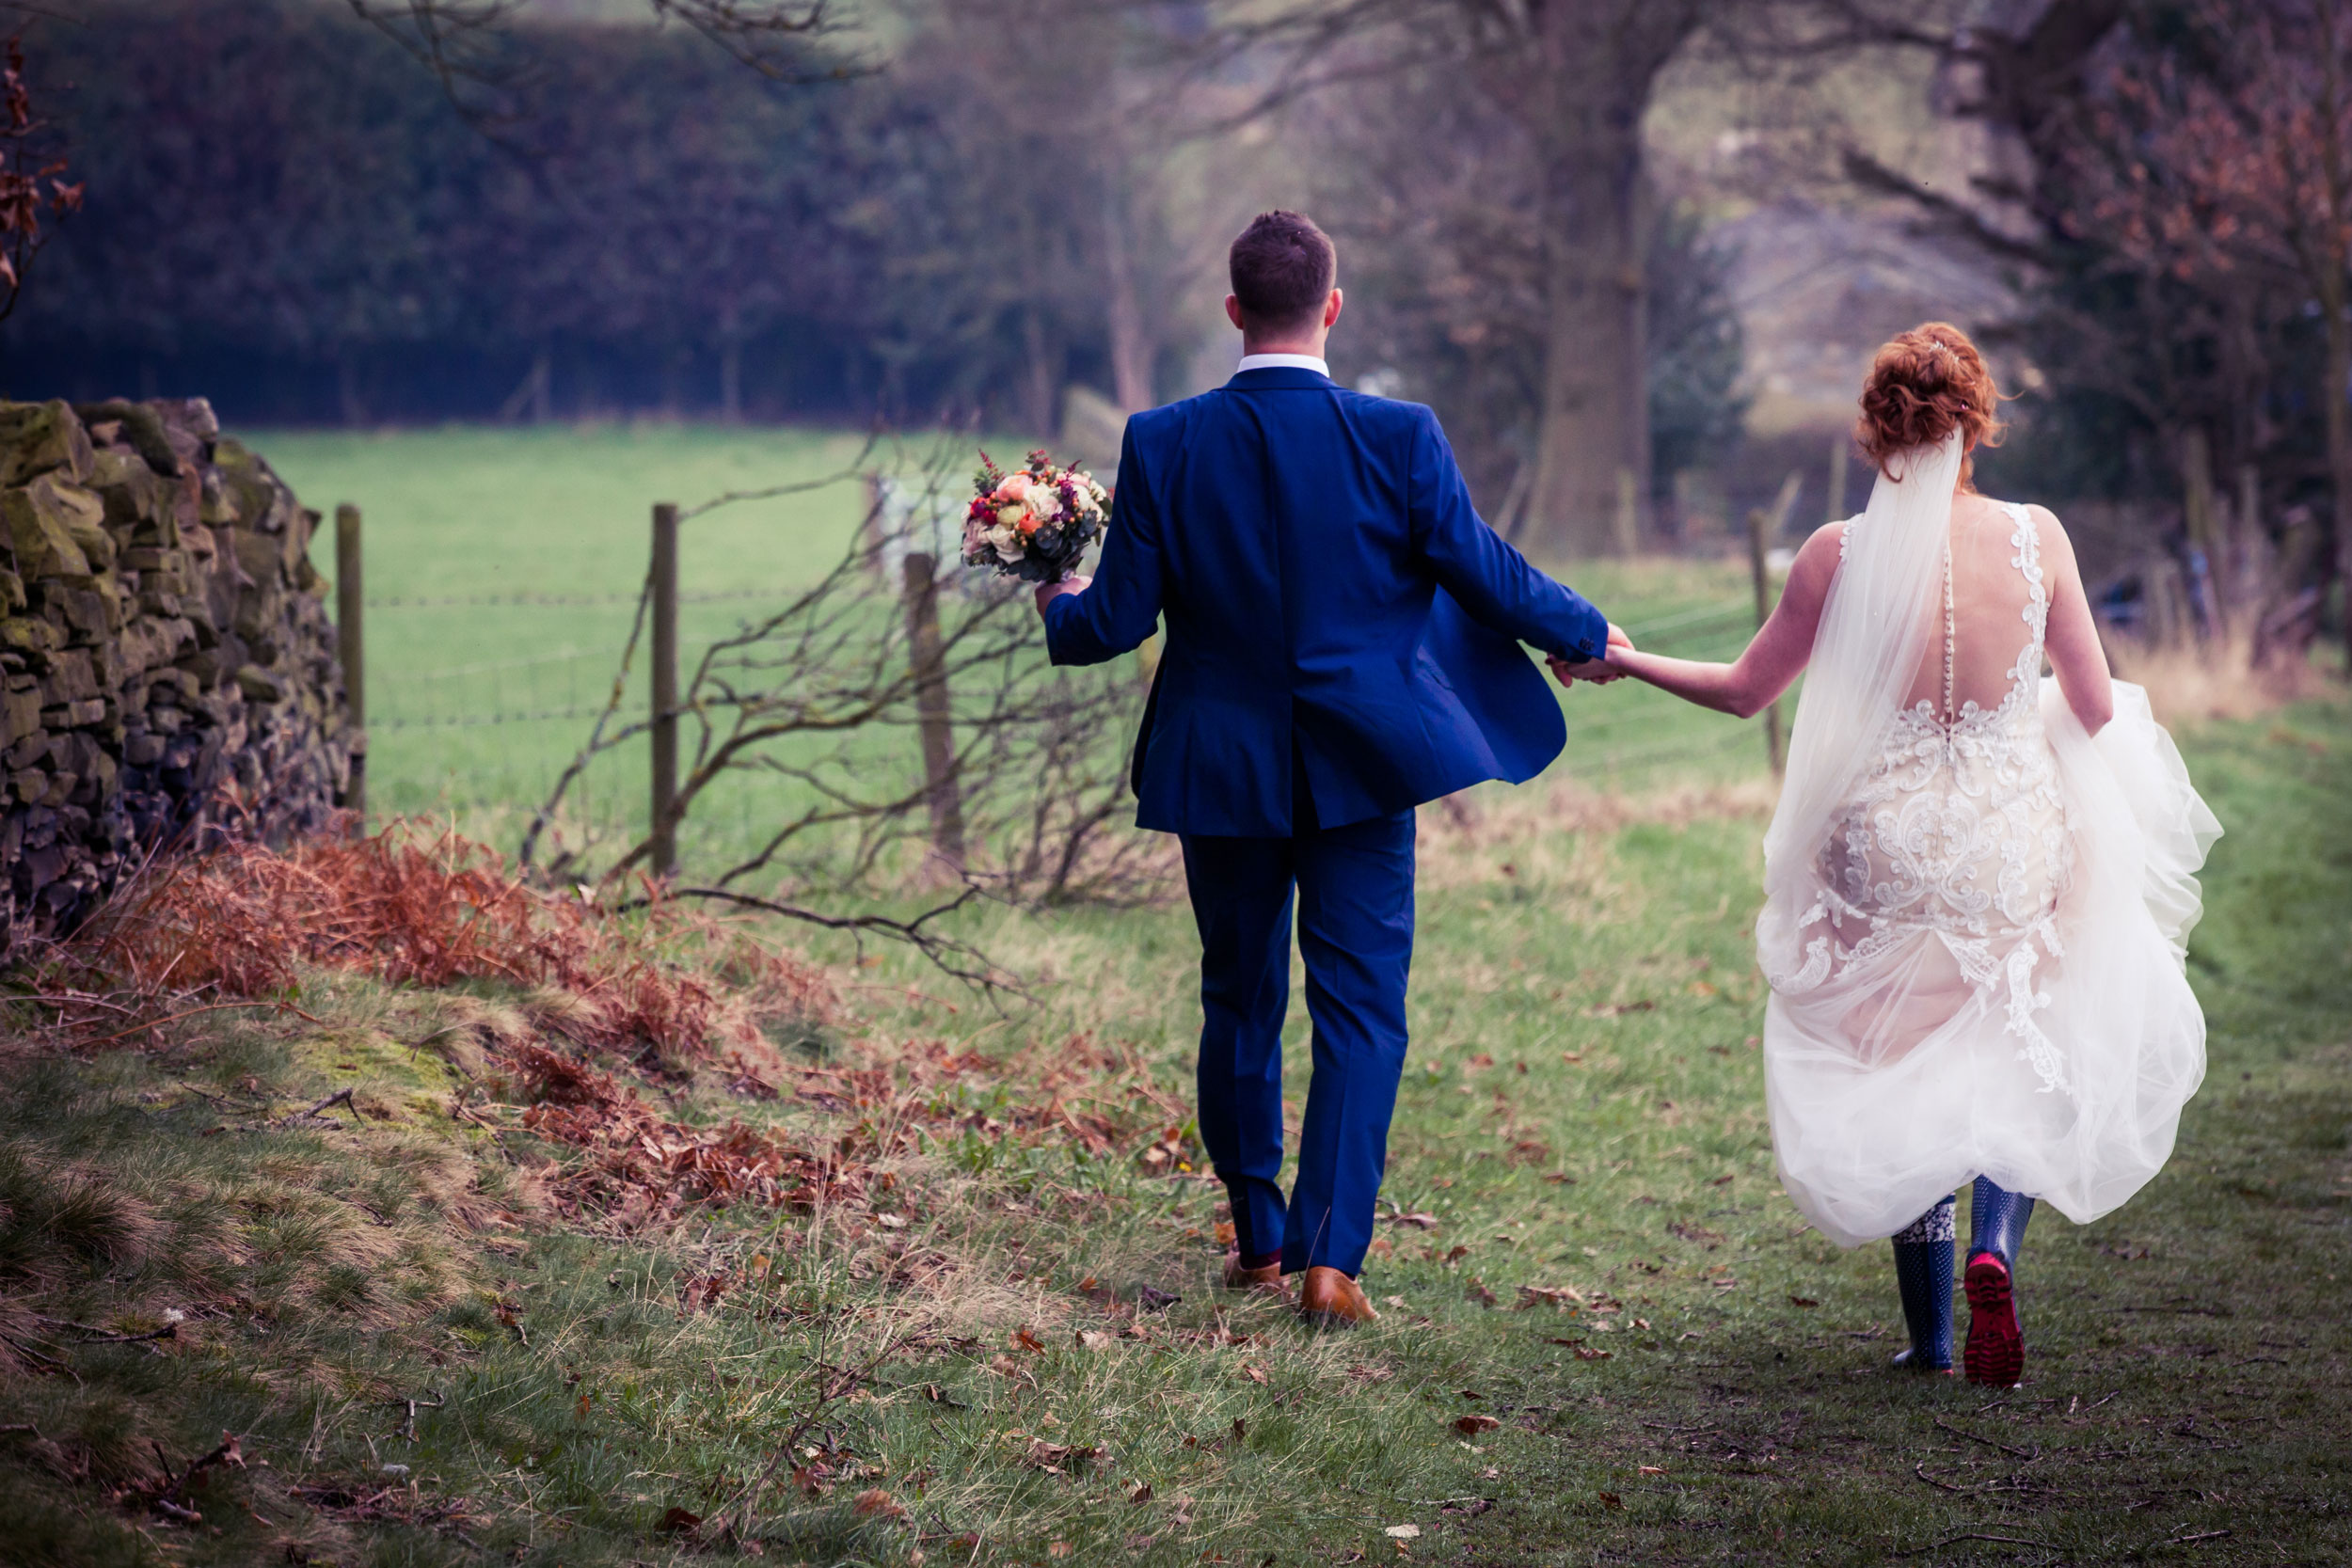 photography-by-kathryn-intimate-wedding-photographer-yorkshire